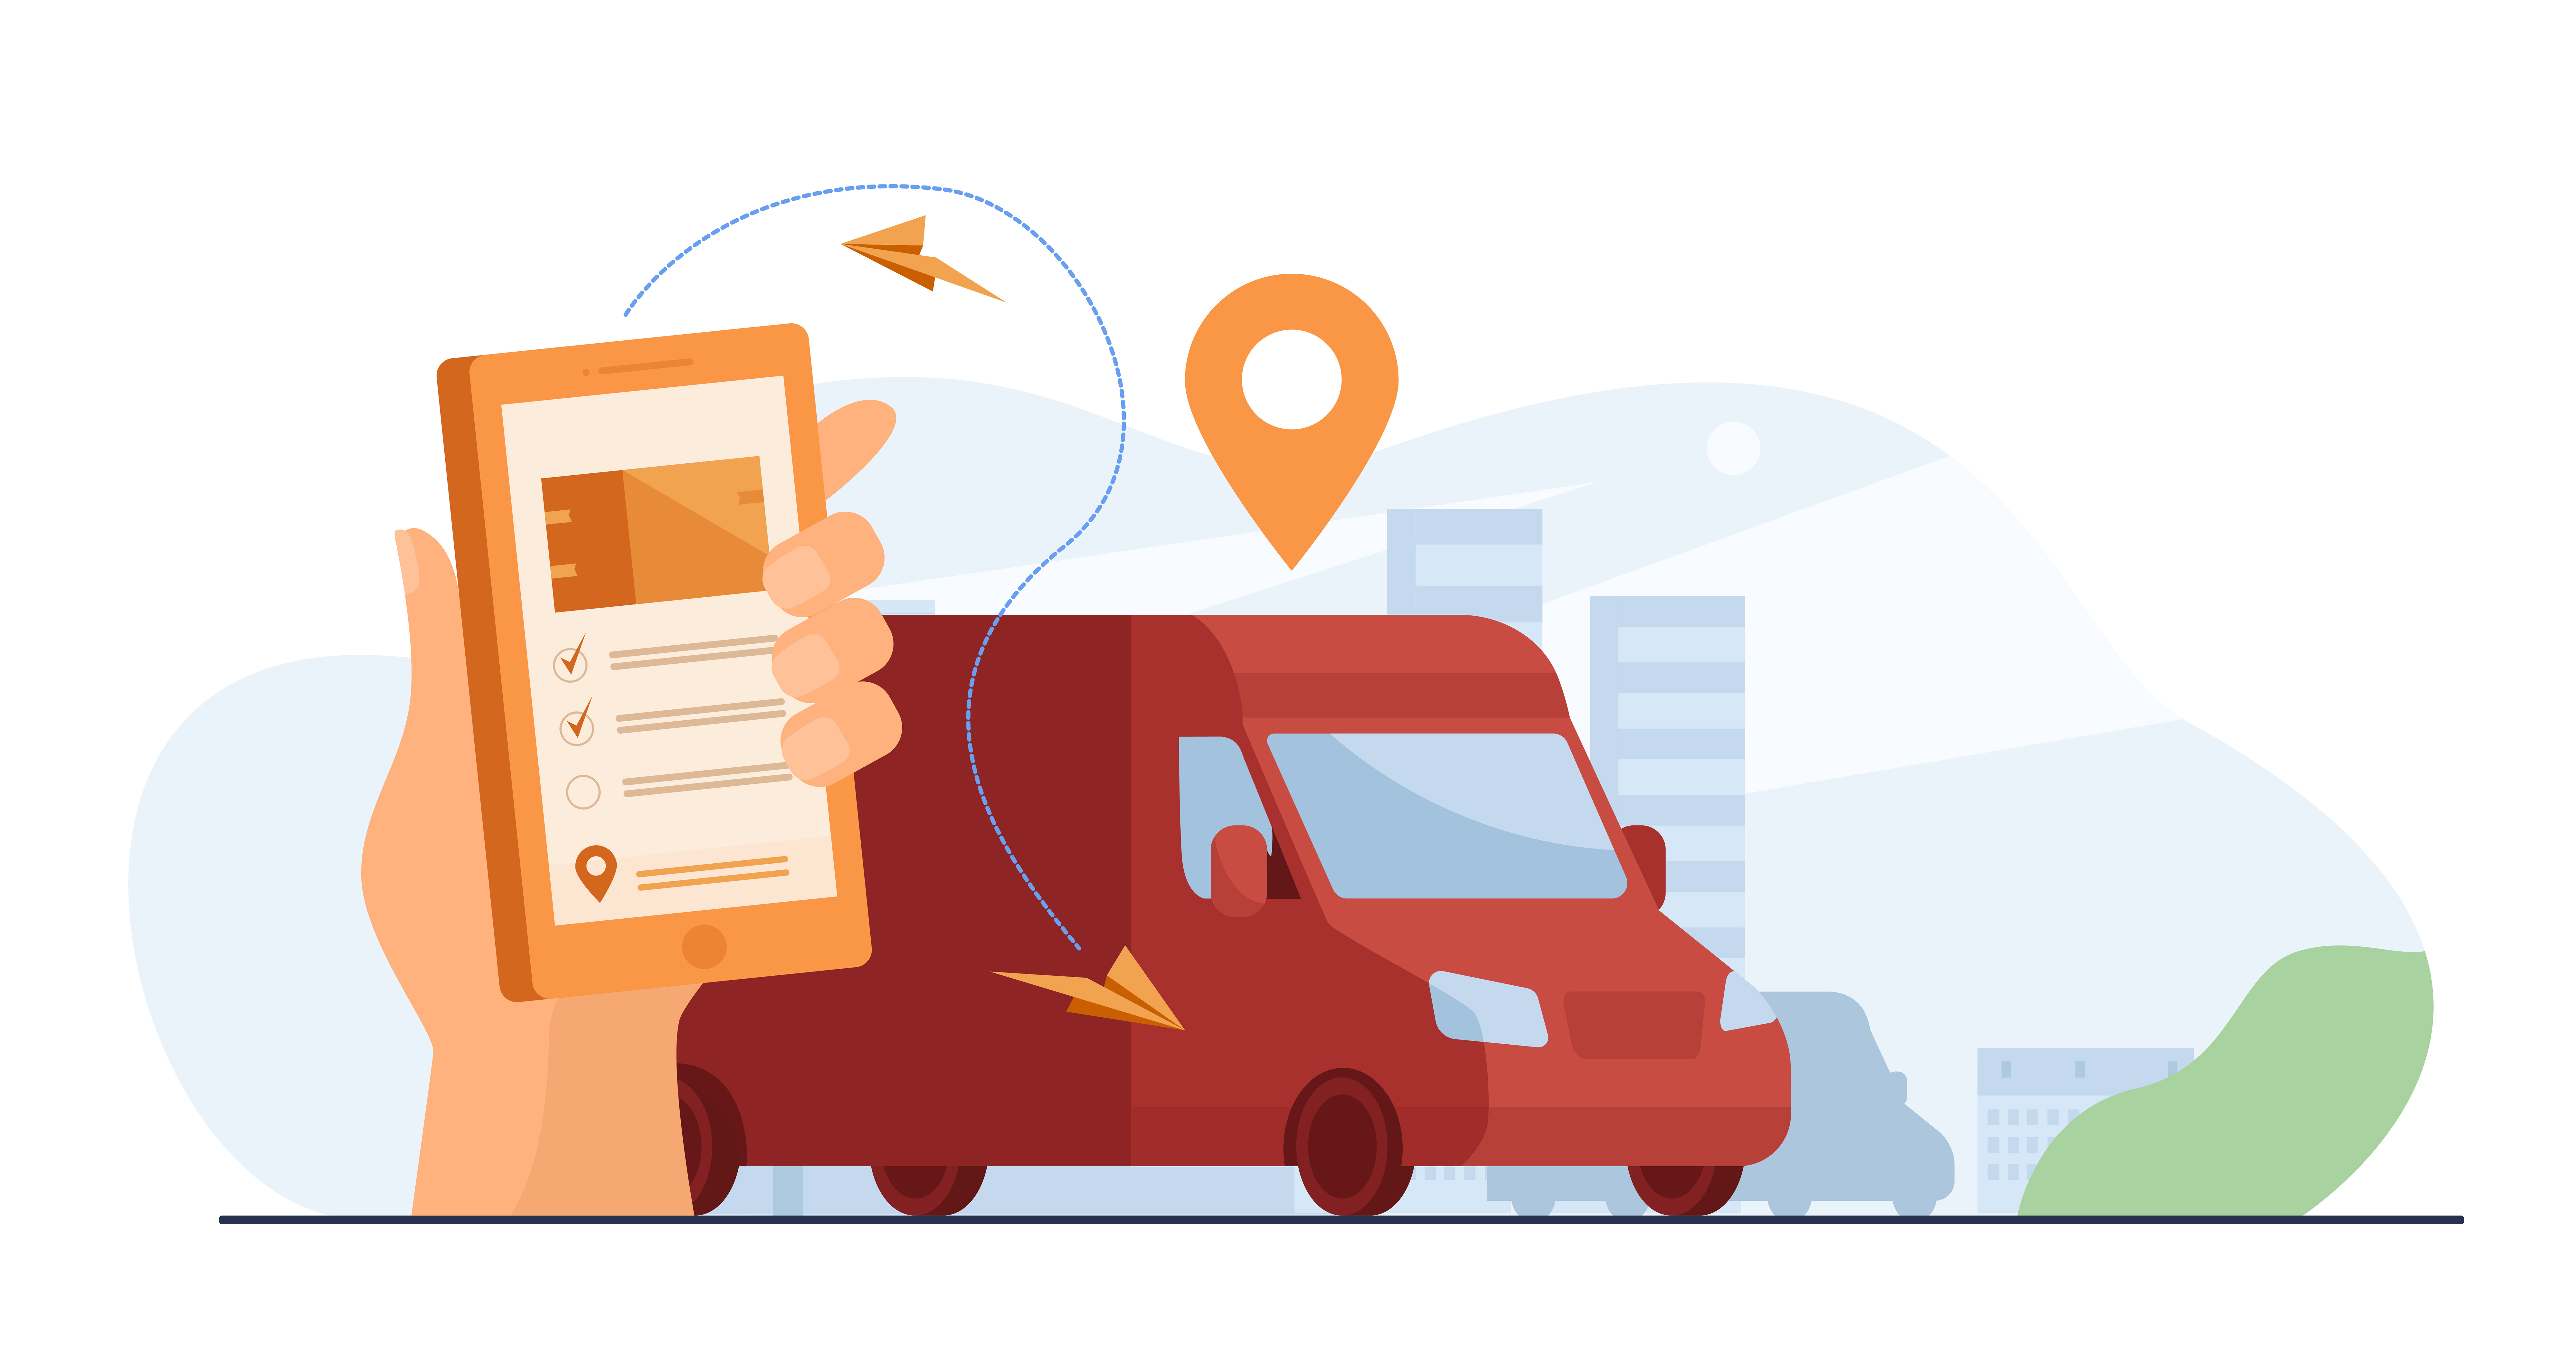 the image shows how an employee gps tracking app works